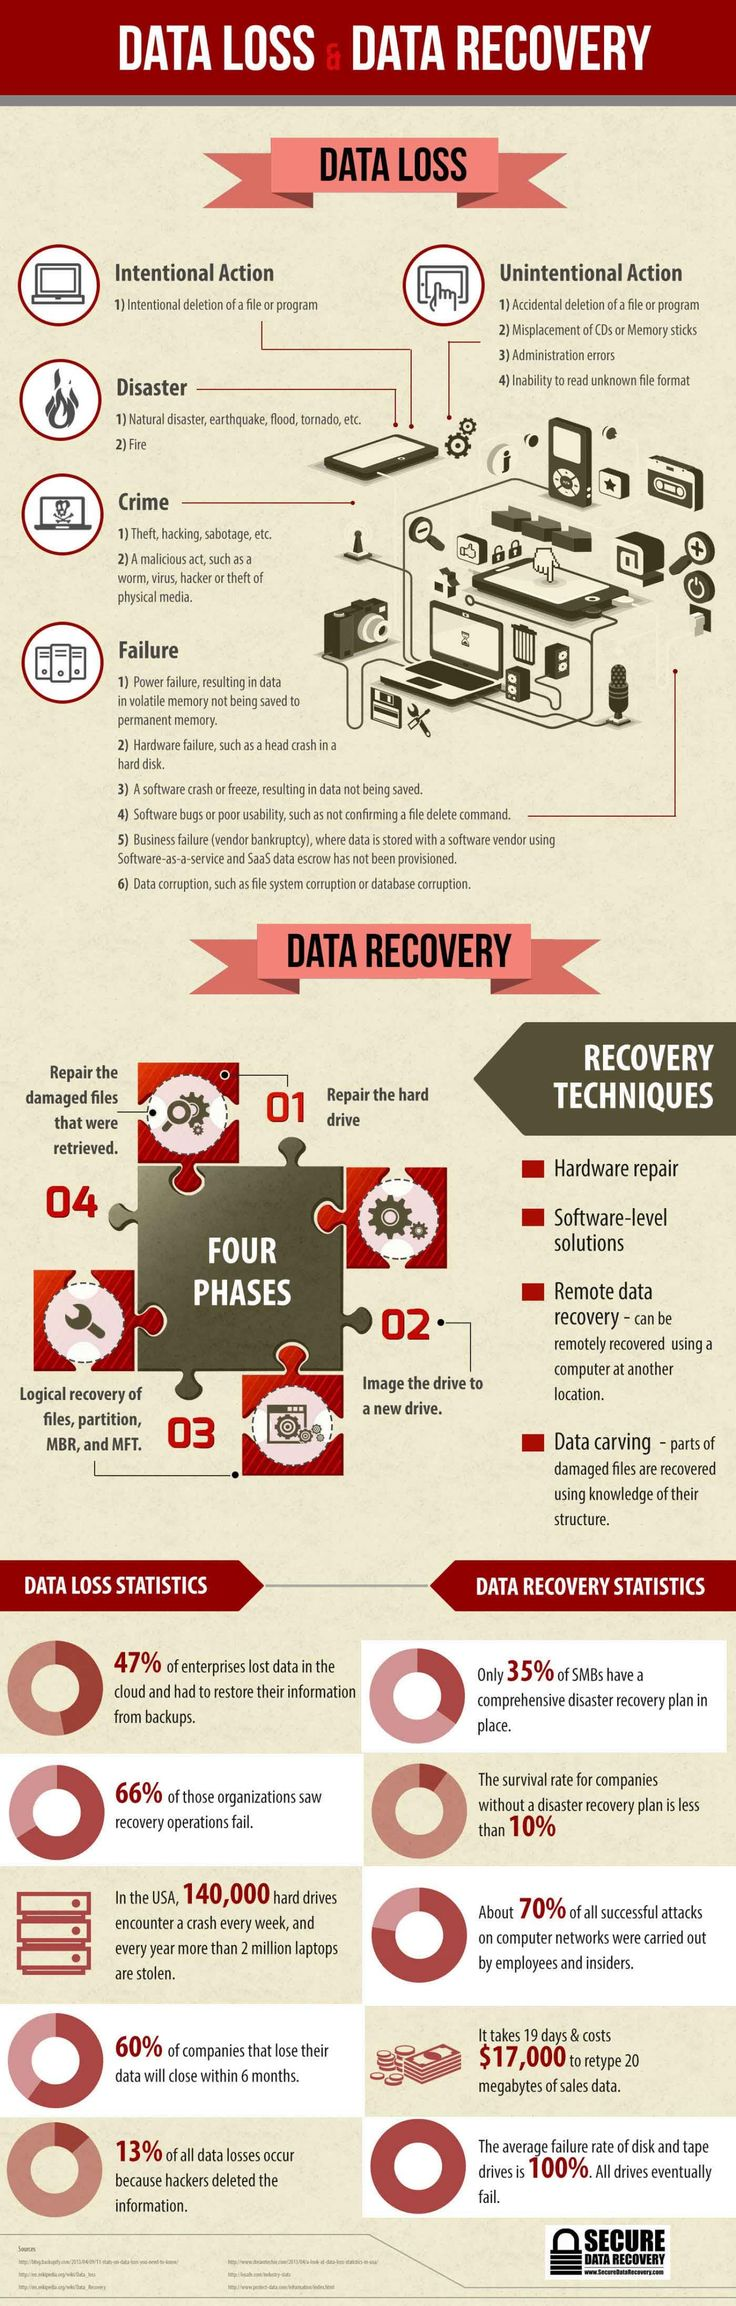 Data management infographic liked by #fabacus > Data Loss & Data Recovery Infographic IT Managers Toolbox - #1 Resource for IT Professionals